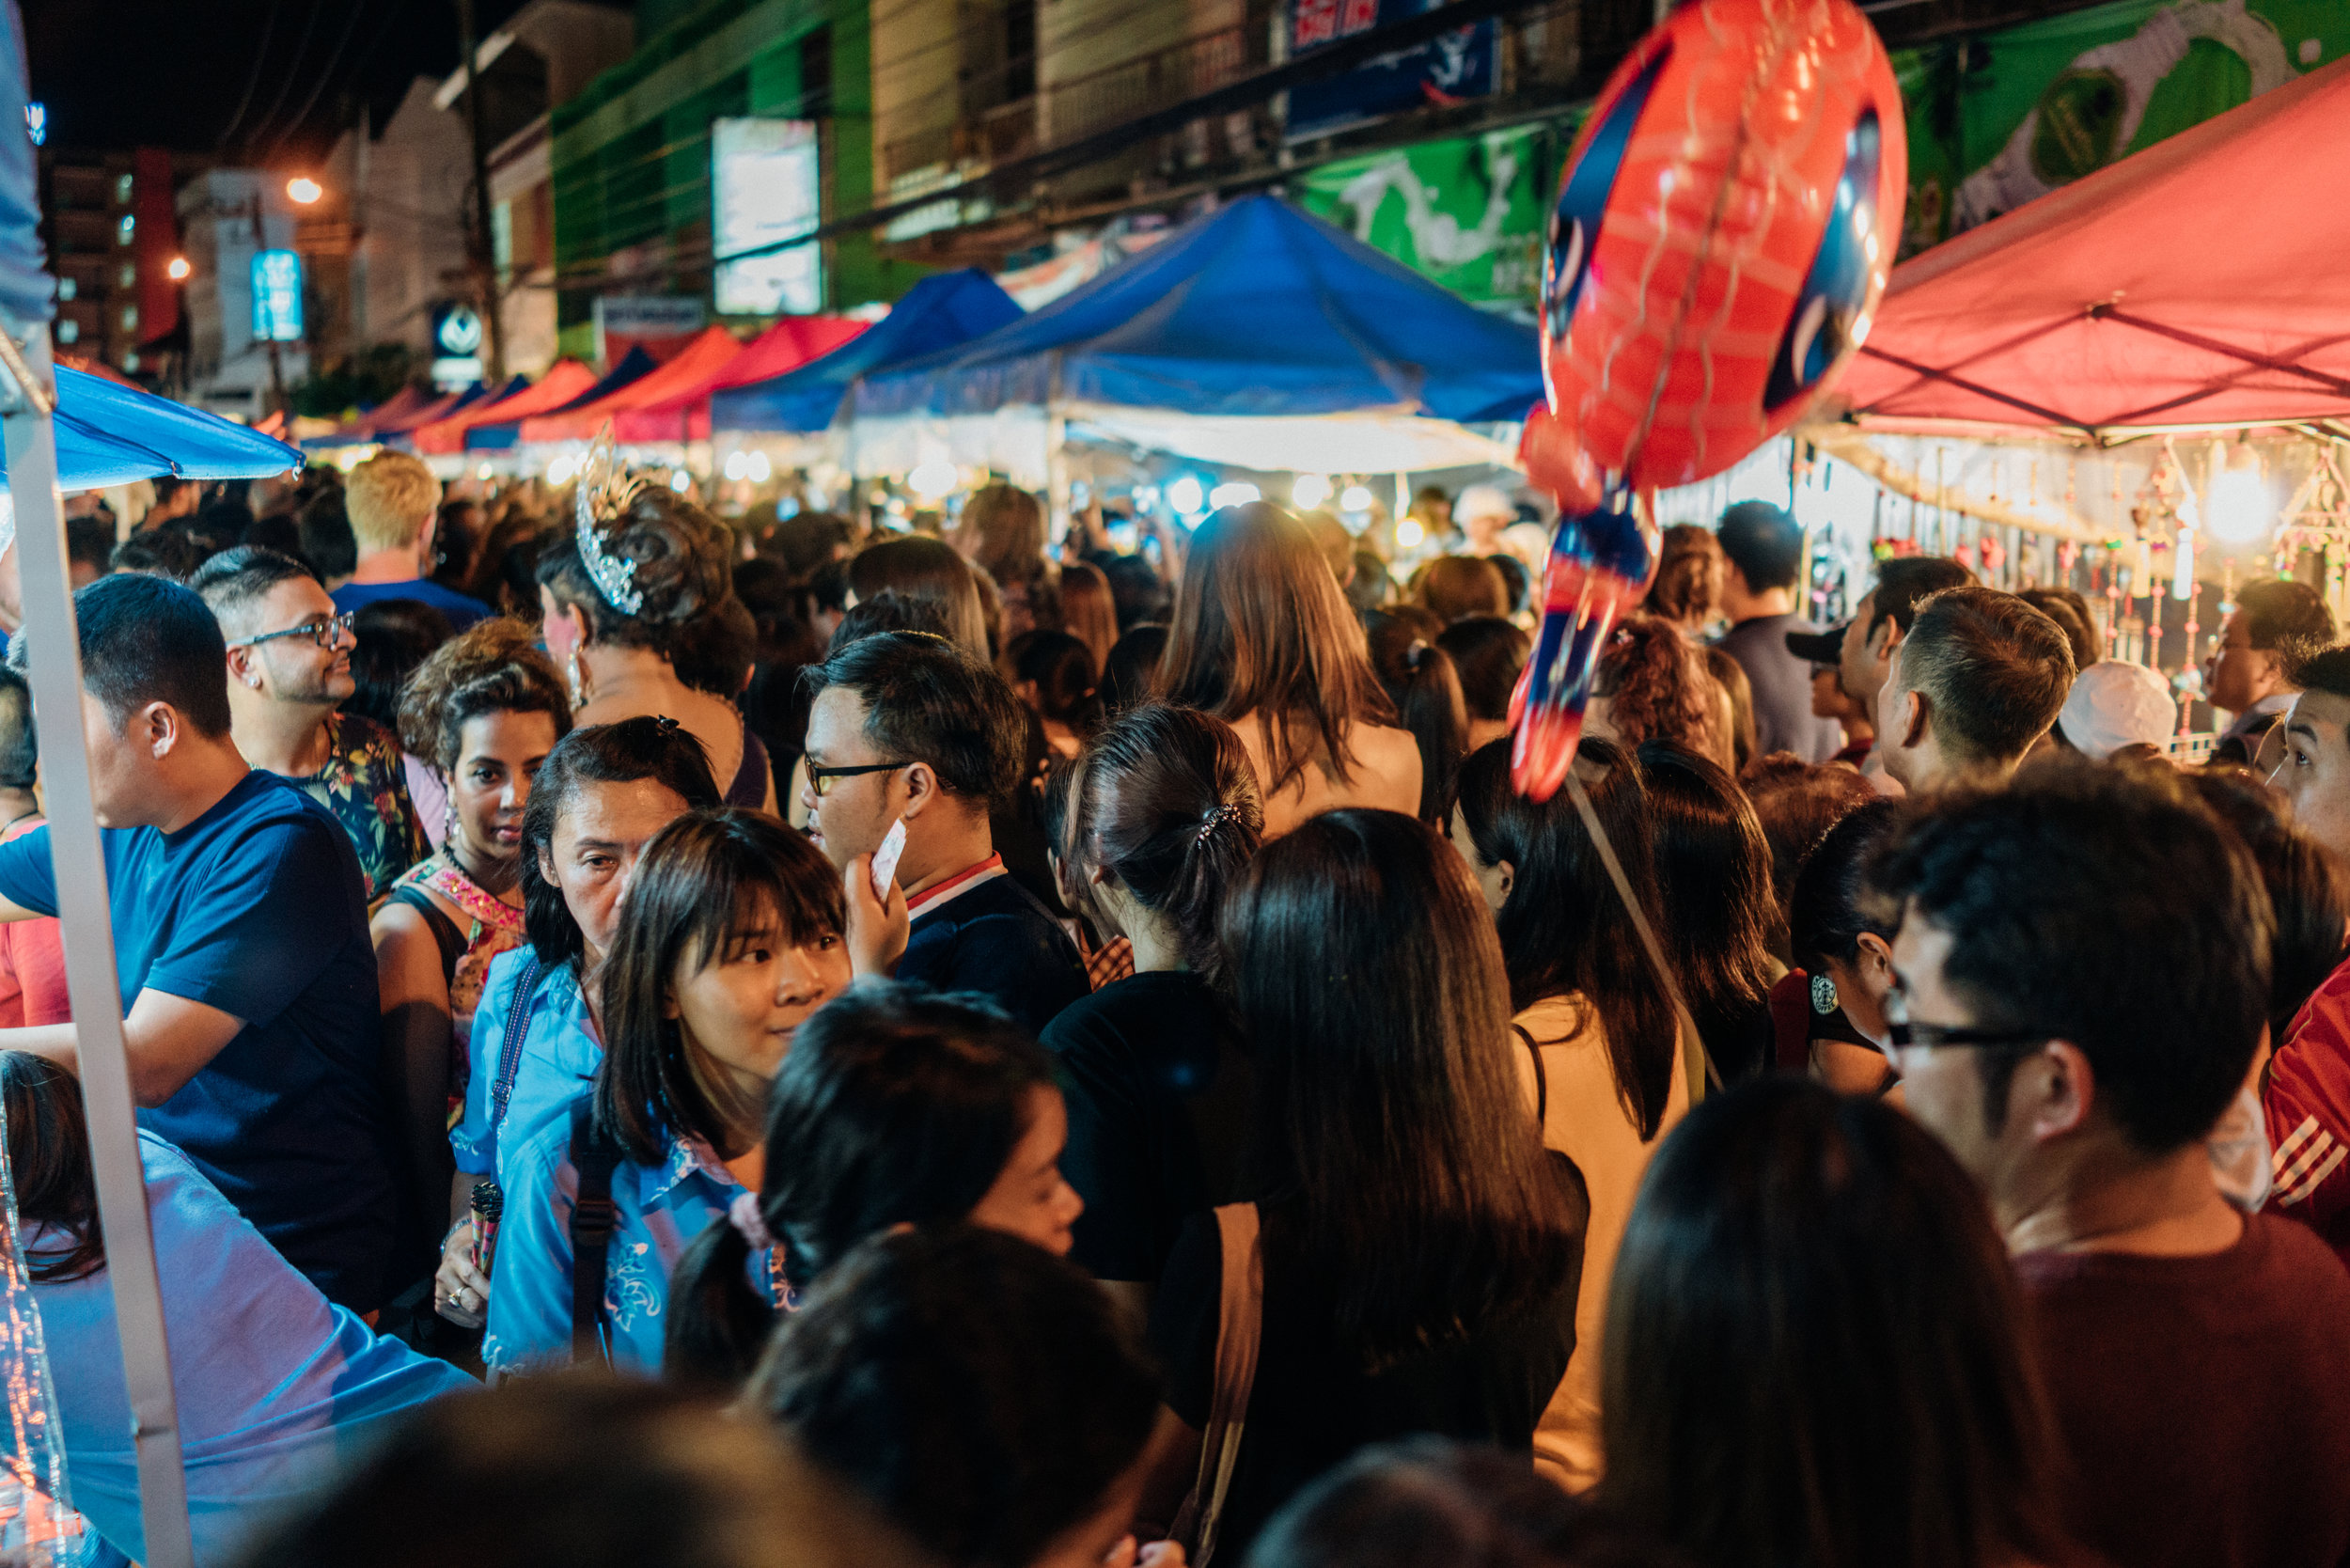 Every night crowds can be found at a different market